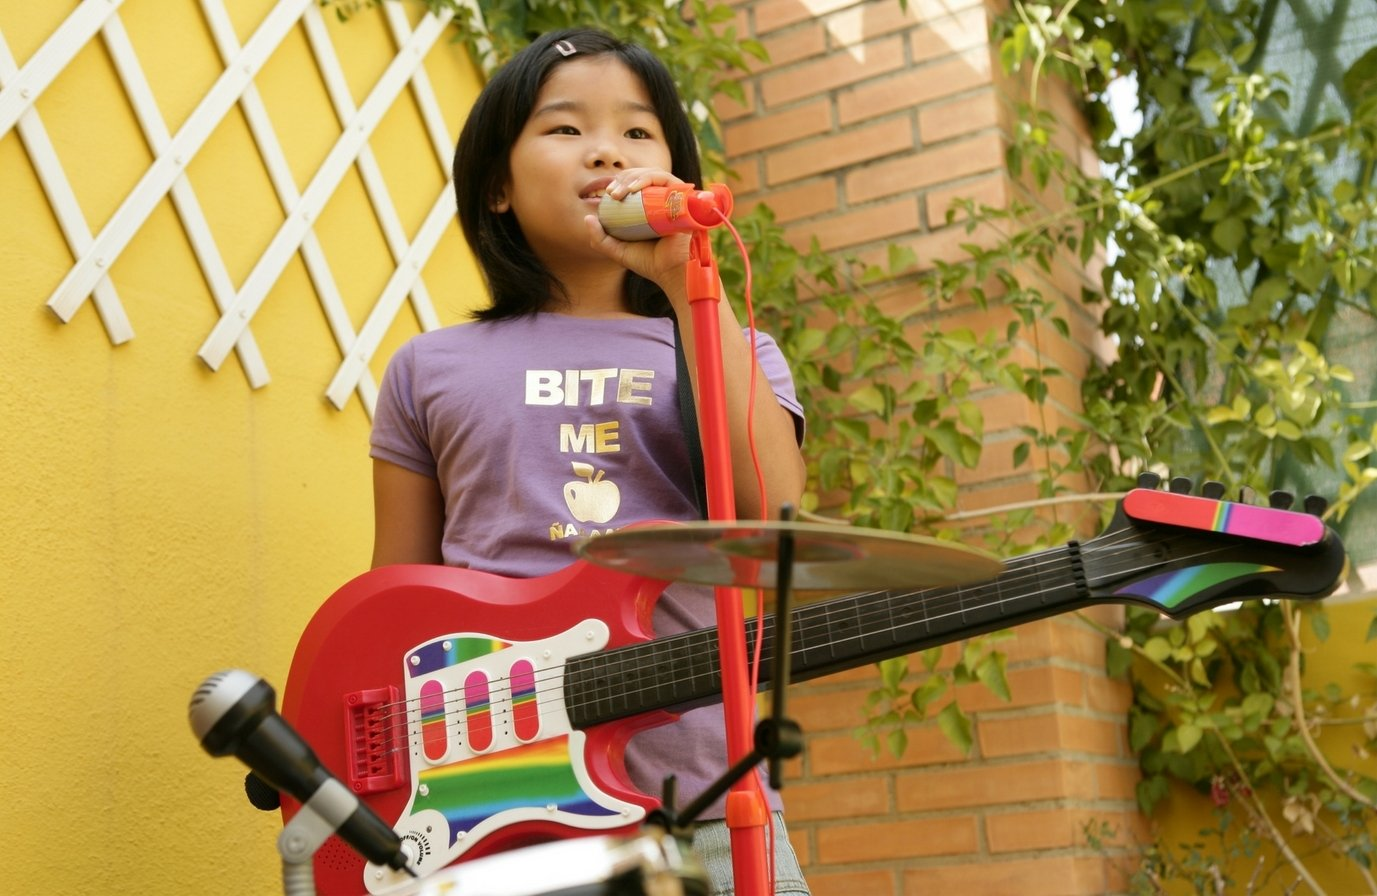 guitar lessons, guitar lessons for beginners, beginner guitar lessons, guitar lesson, bass guitar lessons, guitar lessons for kids